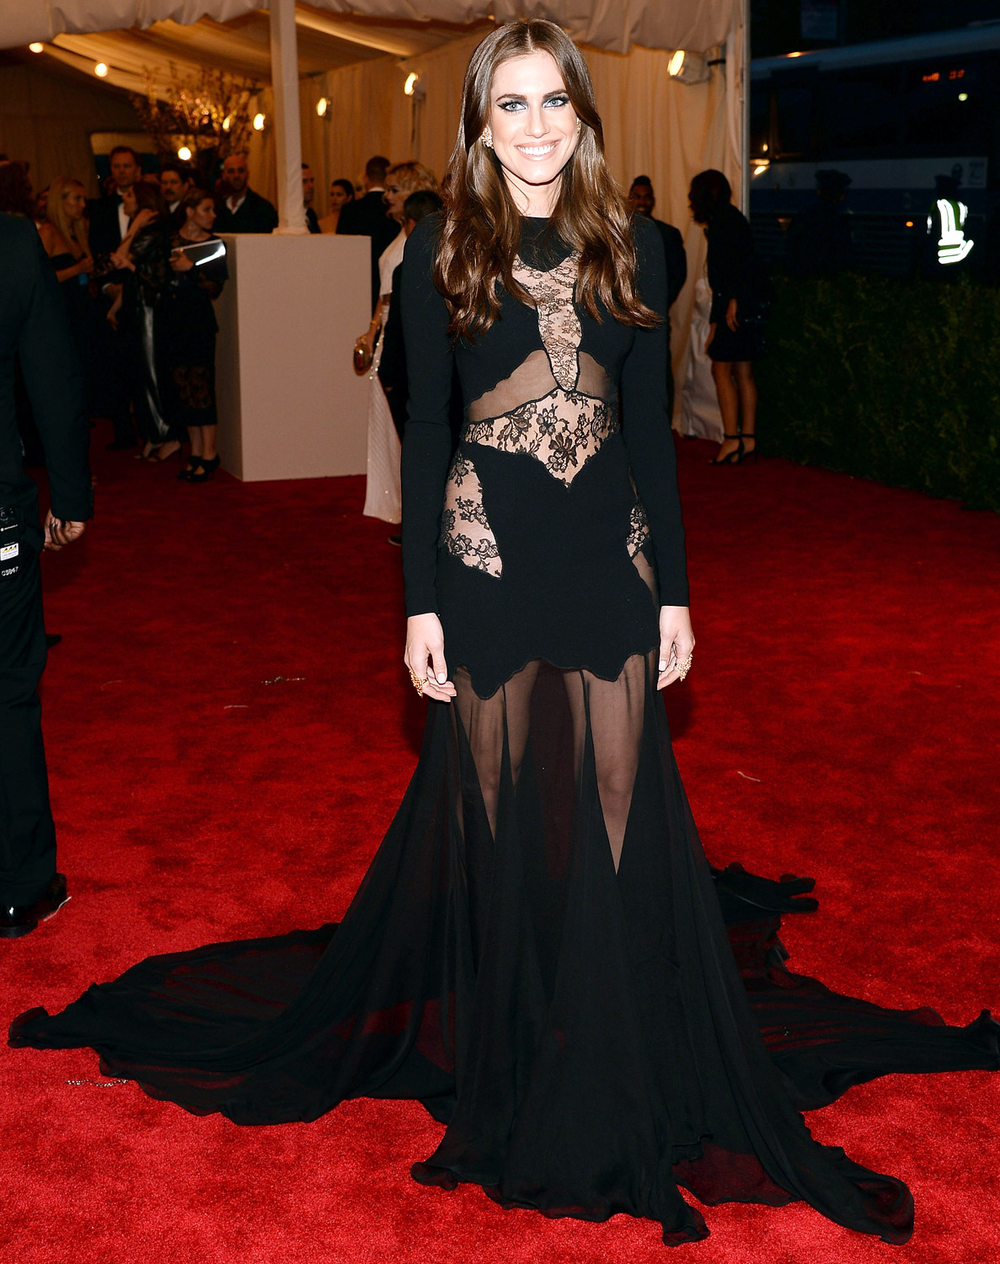 2013 Met Gala:Allison Williamswent uncharacteristically all-out for last night's punk-themed gala. The actress rocked a blackALTUZARRAgown with sheer and lace paneling. A regular punk princess!